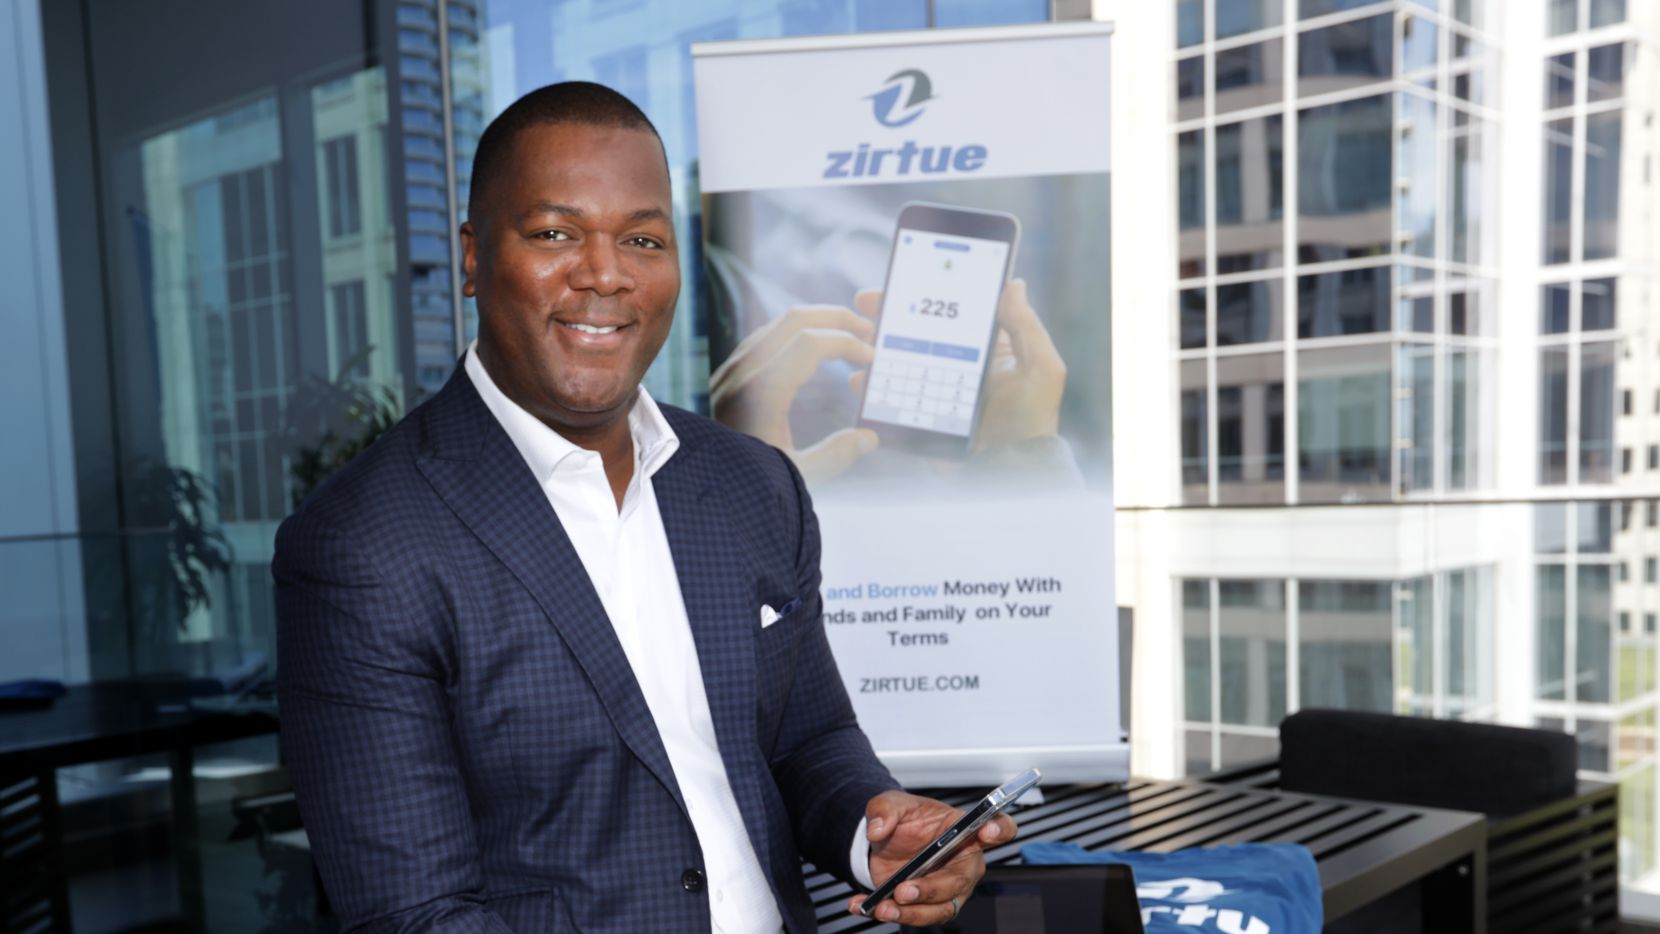 """""""Our big goal is to prove that friends and family are the biggest bank in the world,"""" says Zirtue creator Dennis Cail, at his office in Dallas. """"We're on a mission to drive financial inclusion in North America and abroad."""""""